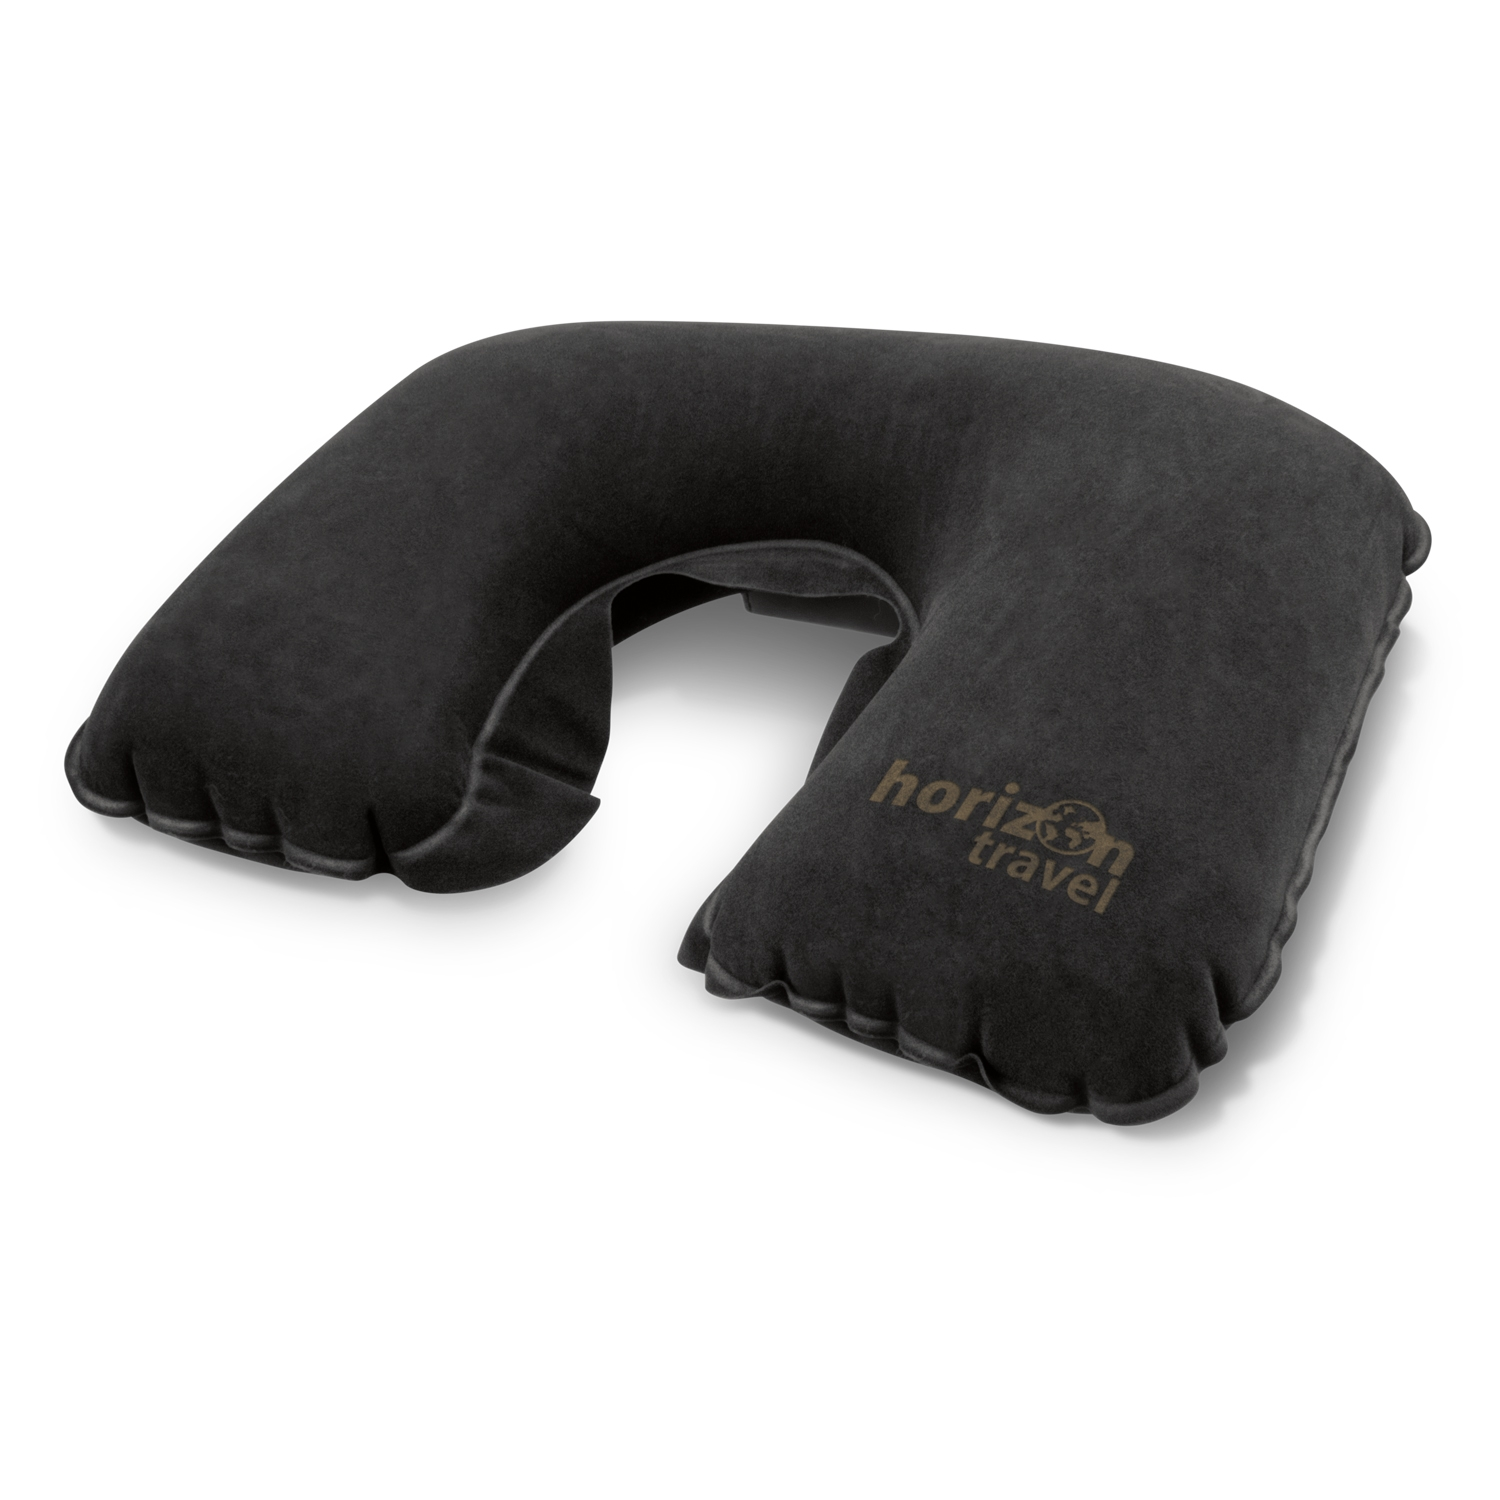 Comfort Neck Pillow – 110513